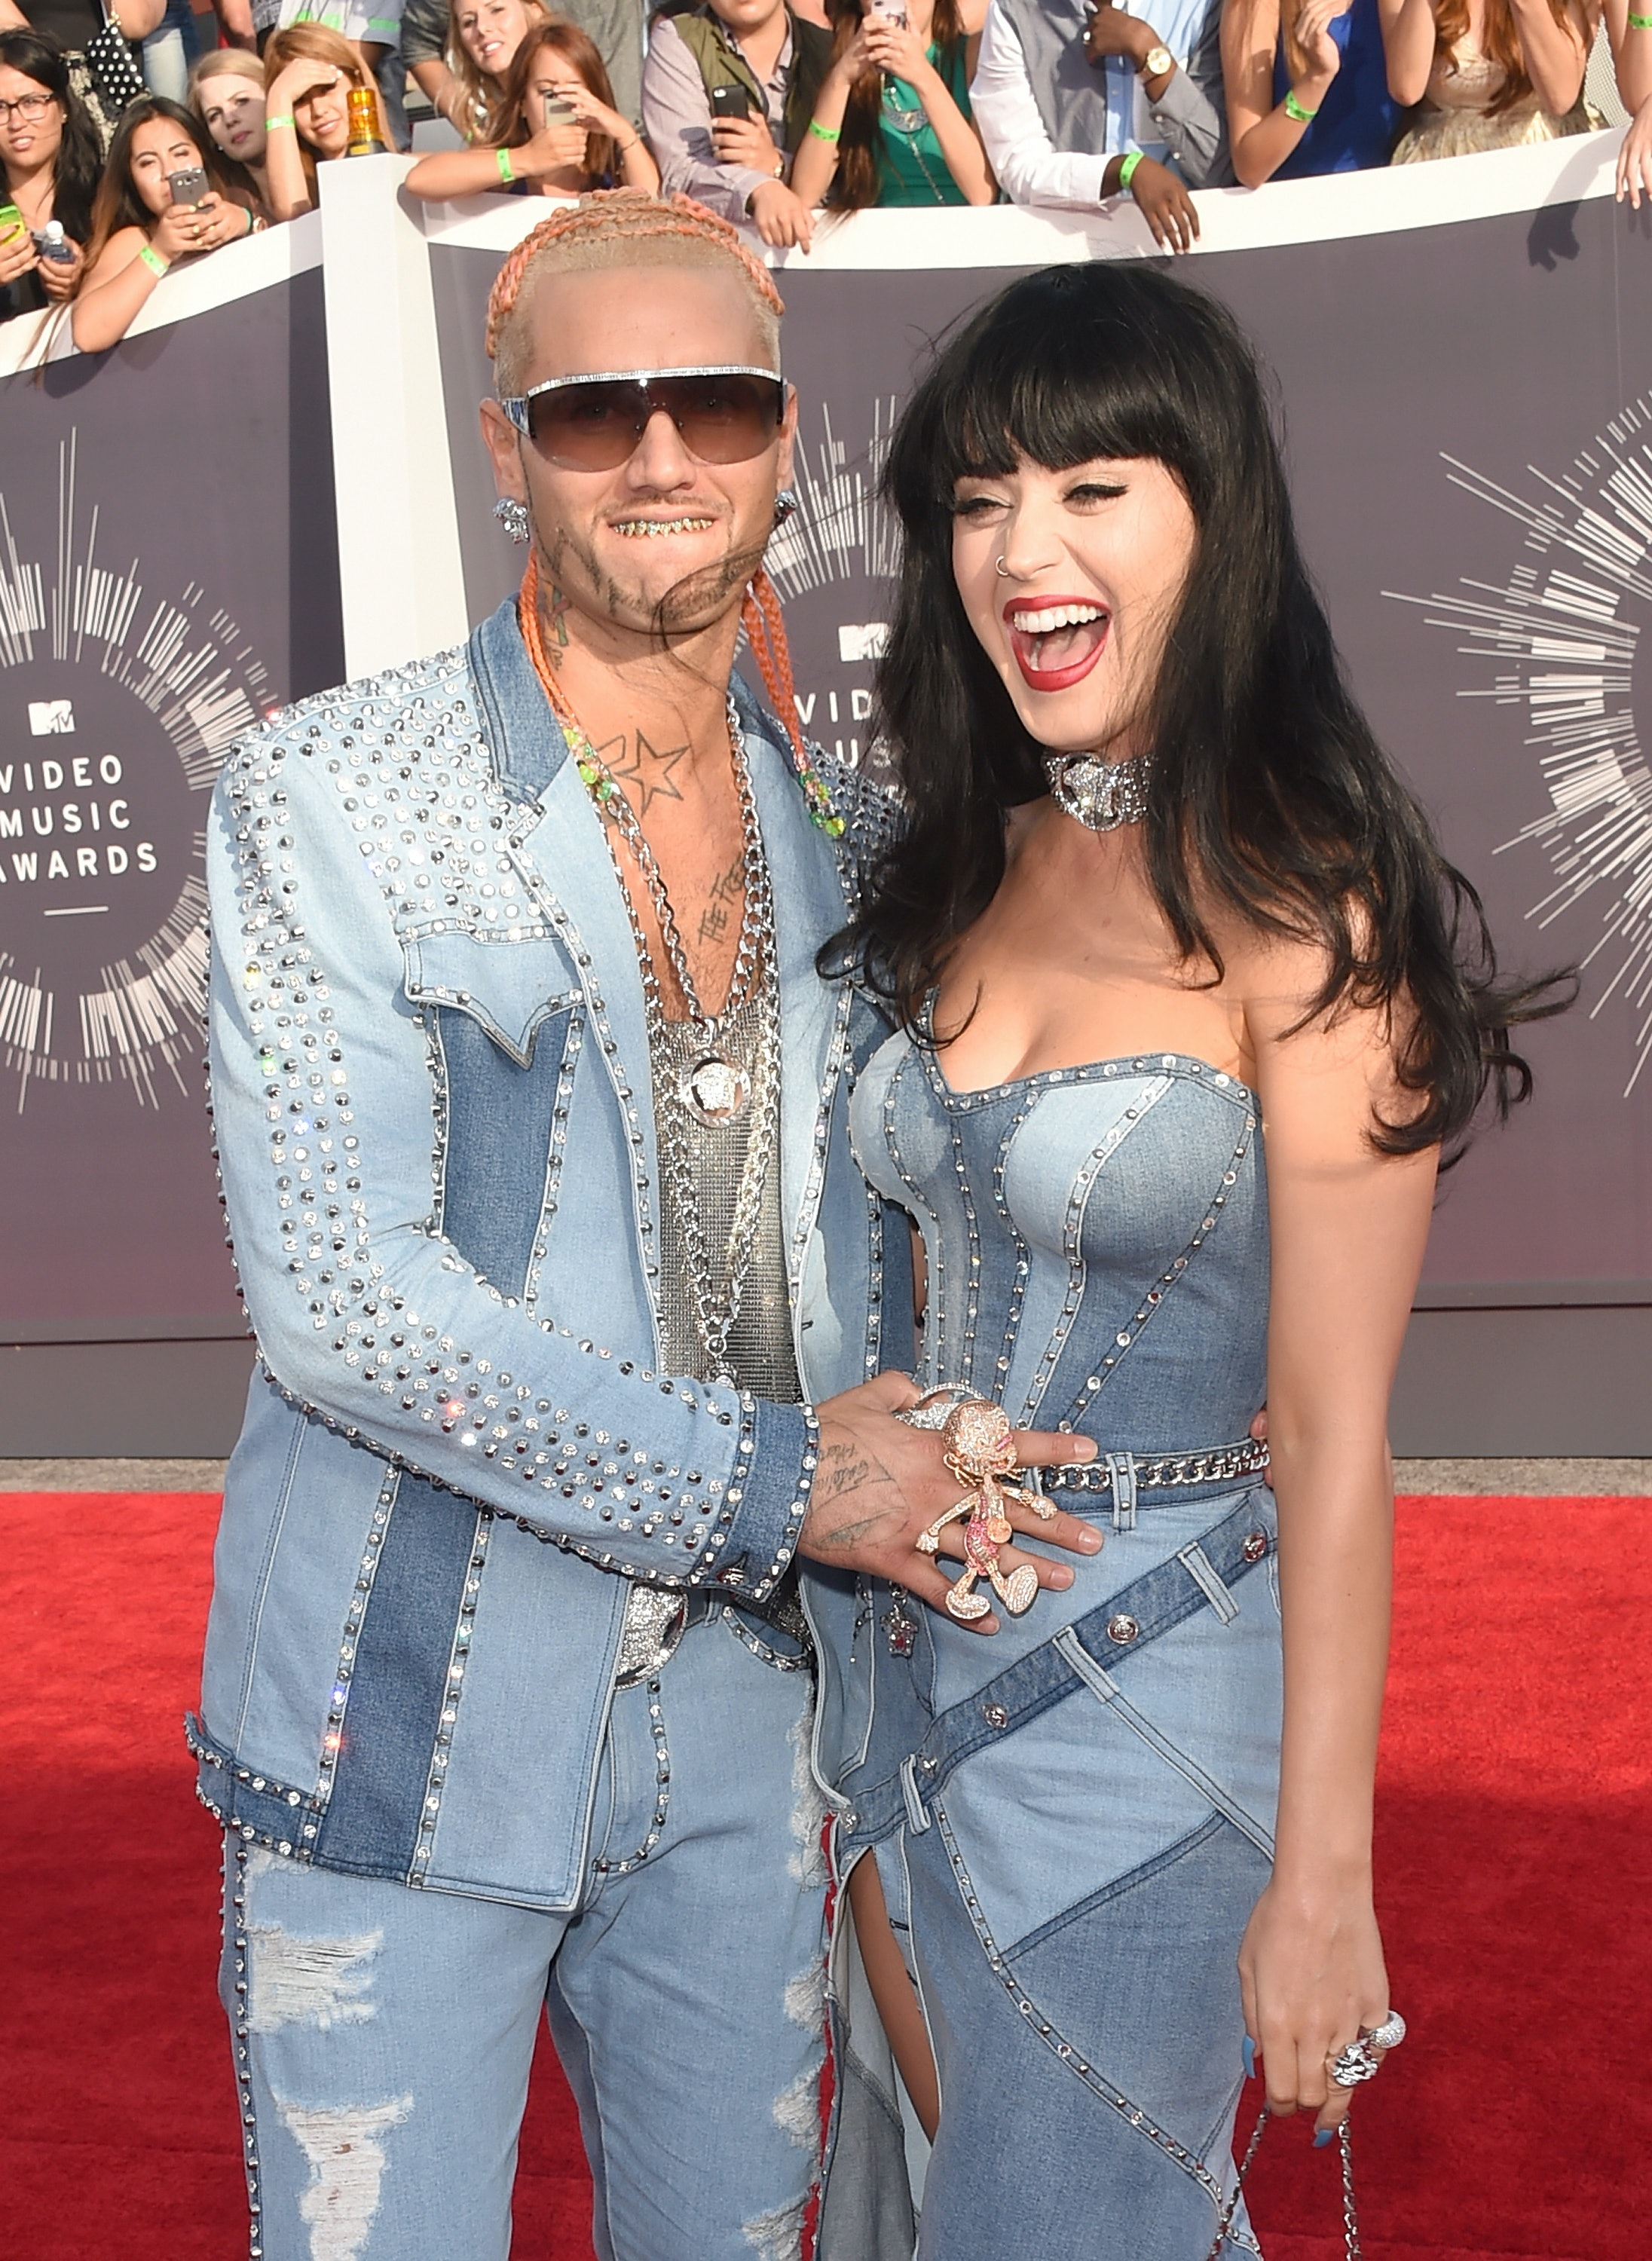 Is katy perry really dating riff raff